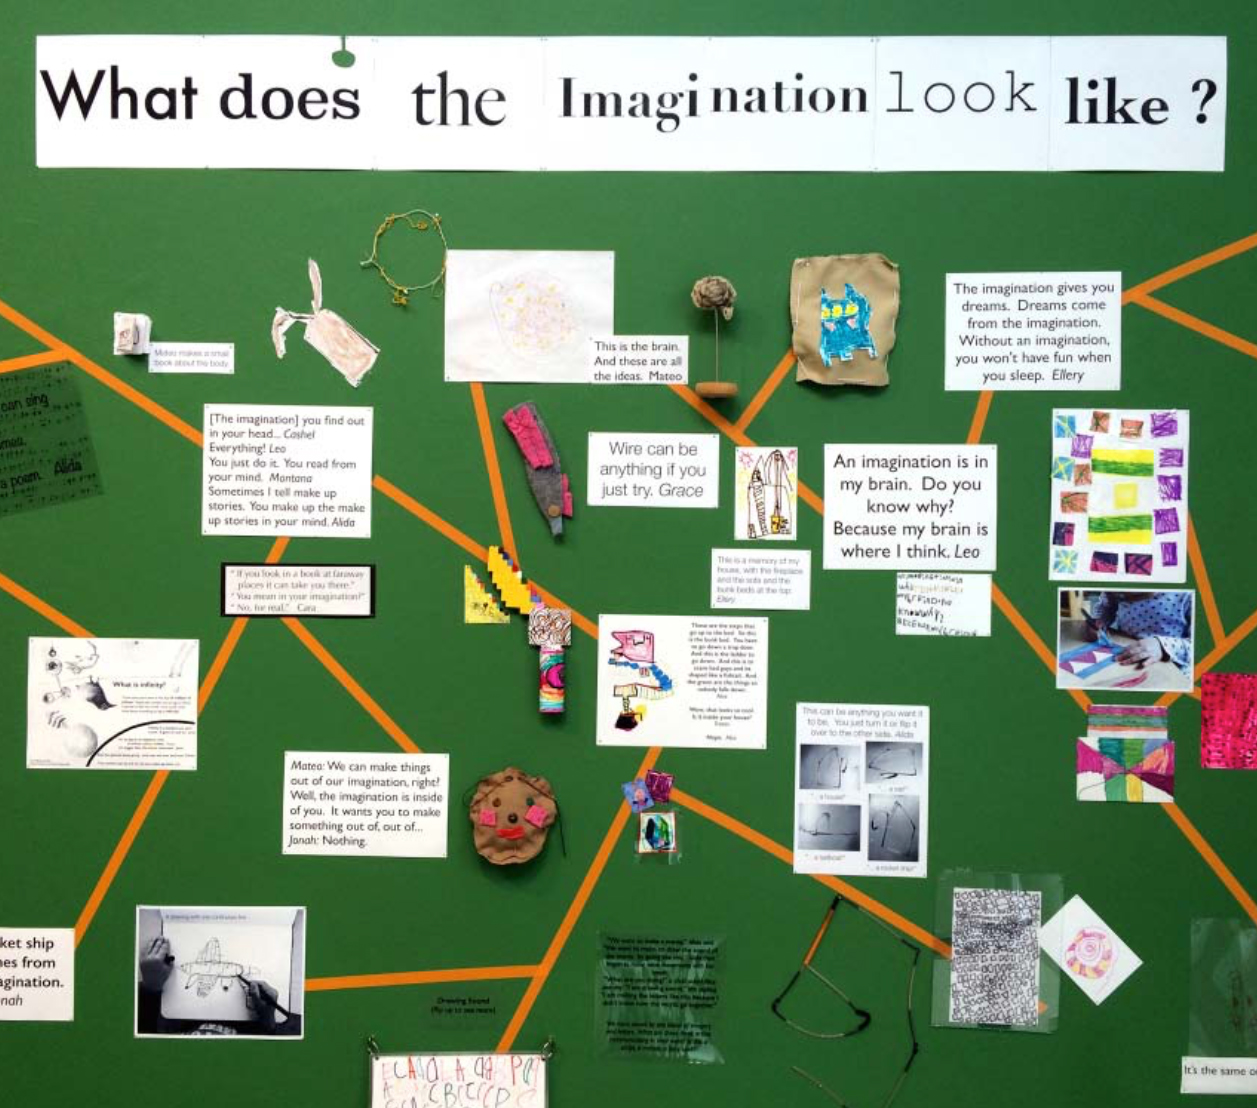 What does the imagination look like?